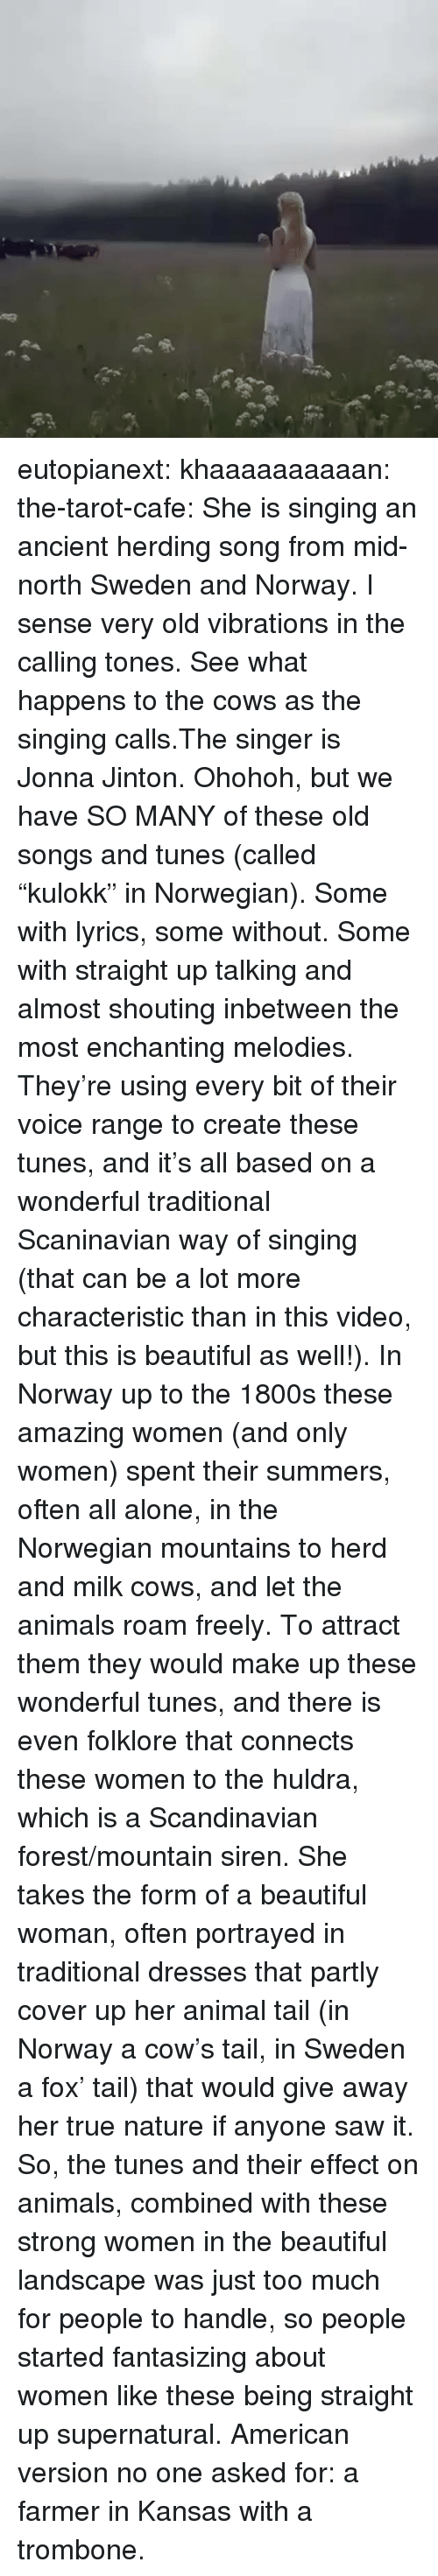 """Being Alone, Animals, and Beautiful: eutopianext:  khaaaaaaaaaan:  the-tarot-cafe:   She is singing an ancient herding song from mid-north Sweden and Norway. I sense very old vibrations in the calling tones. See what happens to the cows as the singing calls.The singer is Jonna Jinton.   Ohohoh, but we have SO MANY of these old songs and tunes (called """"kulokk"""" in Norwegian). Some with lyrics, some without. Some with straight up talking and almost shouting inbetween the most enchanting melodies. They're using every bit of their voice range to create these tunes, and it's all based on a wonderful traditional Scaninavian way of singing (that can be a lot more characteristic than in this video, but this is beautiful as well!).  In Norway up to the 1800s these amazing women (and only women) spent their summers, often all alone, in the Norwegian mountains to herd and milk cows, and let the animals roam freely. To attract them they would make up these wonderful tunes, and there is even folklore that connects these women to the huldra, which is a Scandinavian forest/mountain siren. She takes the form of a beautiful woman, often portrayed in traditional dresses that partly cover up her animal tail (in Norway a cow's tail, in Sweden a fox' tail) that would give away her true nature if anyone saw it.  So, the tunes and their effect on animals, combined with these strong women in the beautiful landscape was just too much for people to handle, so people started fantasizing about women like these being straight up supernatural.  American version no one asked for: a farmer  in Kansas   with a trombone."""